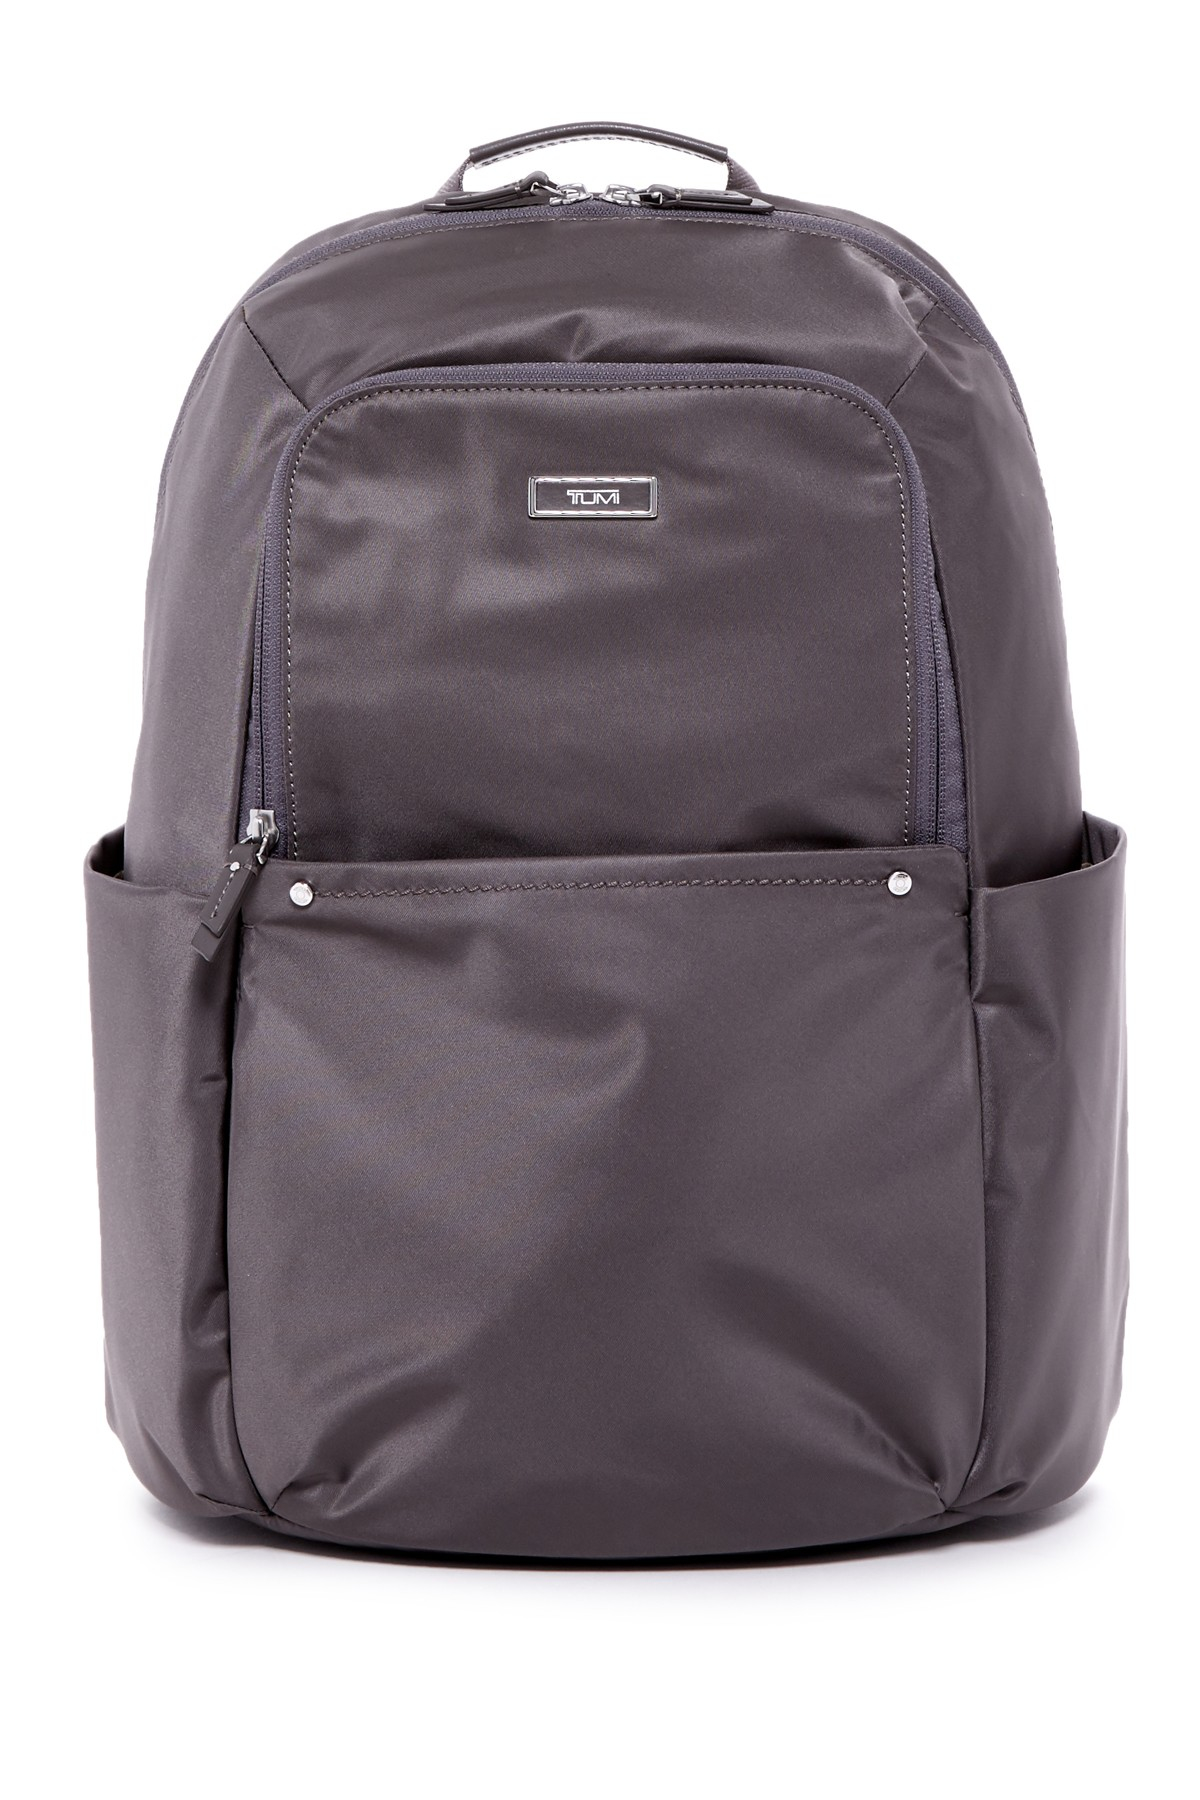 Lyst Tumi Voyageur Nylon Anodra Backpack In Gray